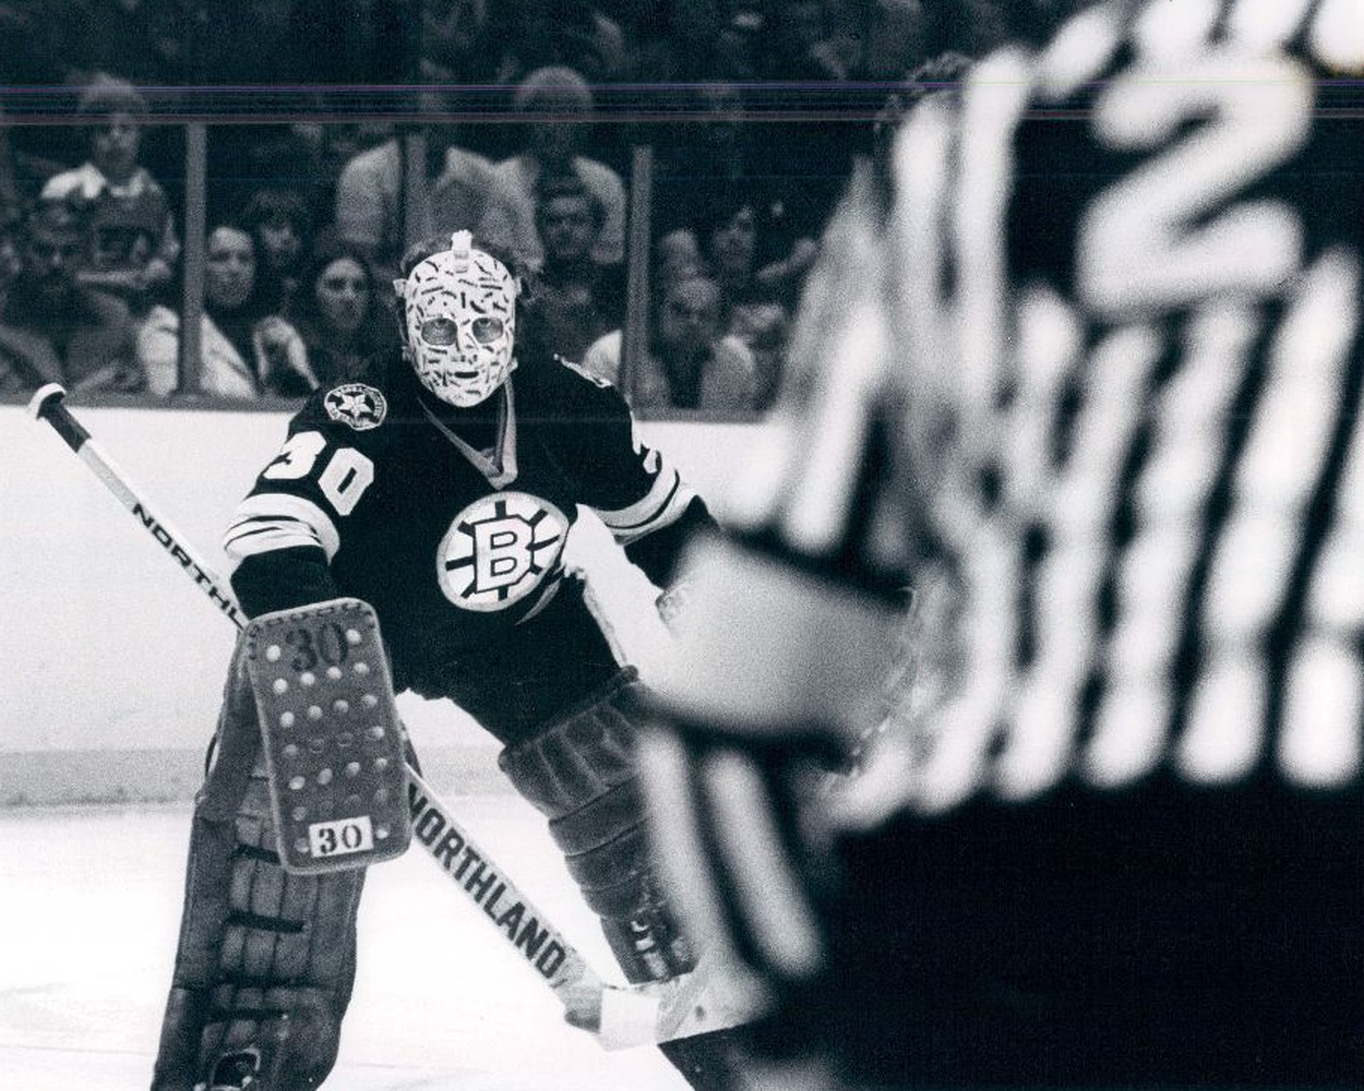 Gerry Cheevers First Goalie To Decorate His Mask